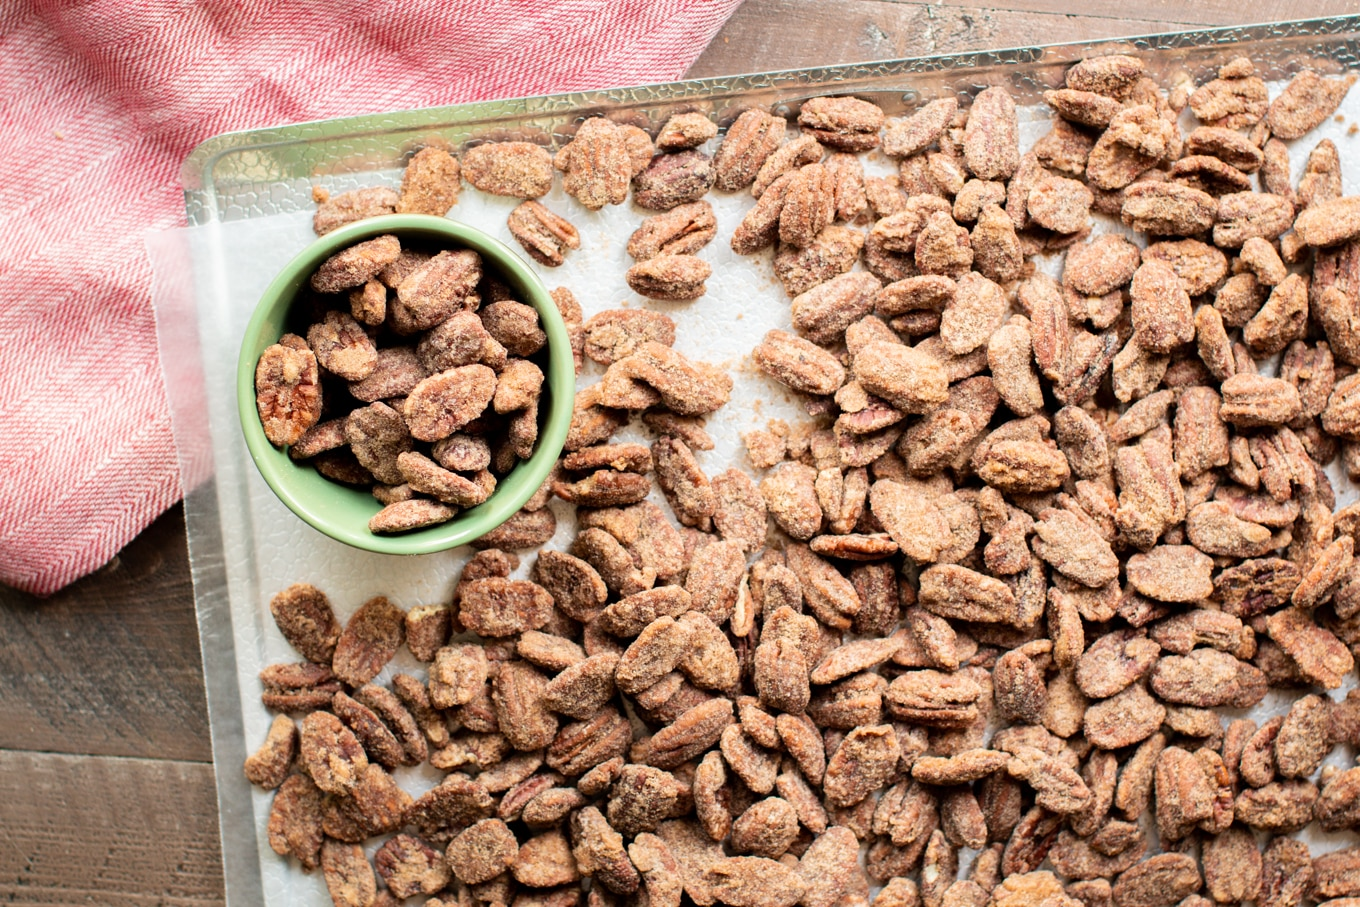 pecans on a wax paper-lined sheet tray. Some pecans in a small green bowl.